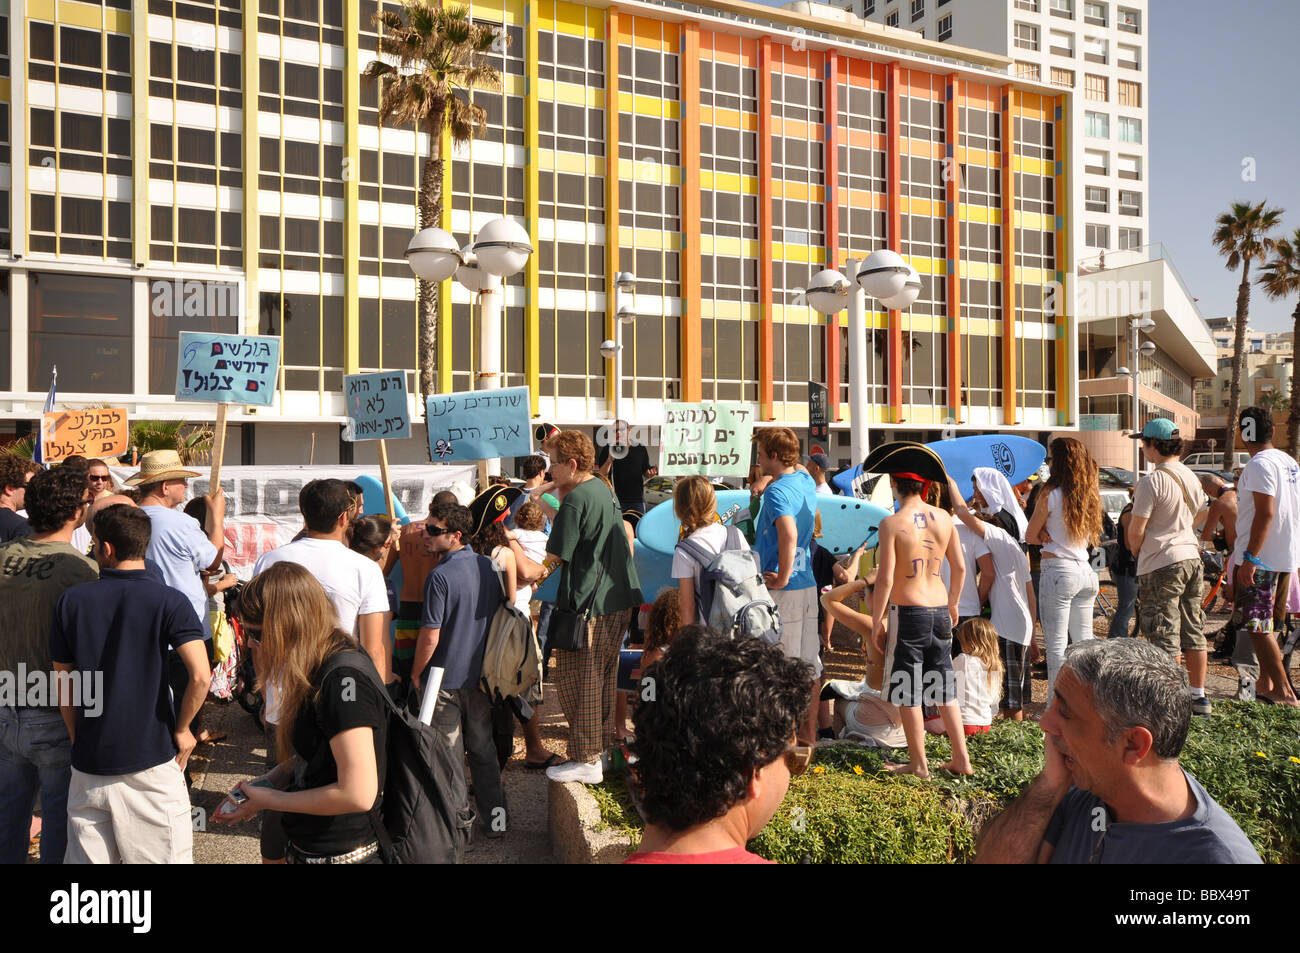 Israel Tel Aviv An anti sea pollution protest led by Knesset Member Nitzan Horowitz o - Stock Image